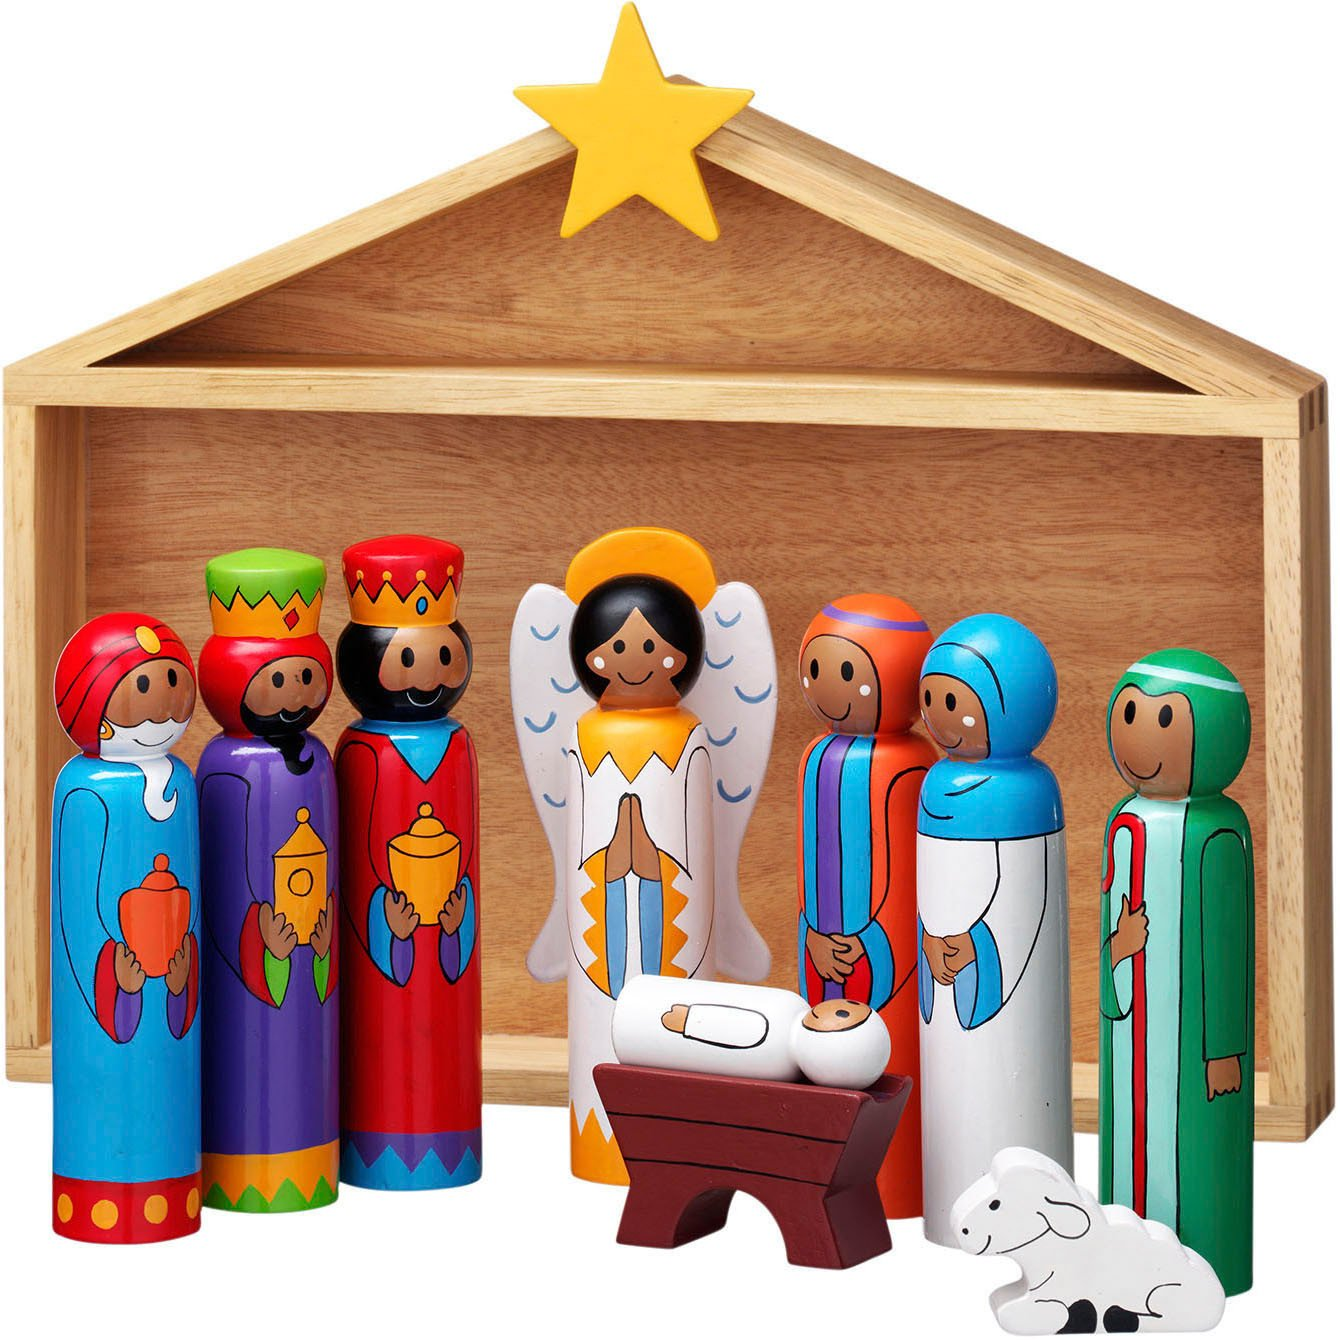 1340x1340 Childrens Nativity Sets Liverpool Cathedral